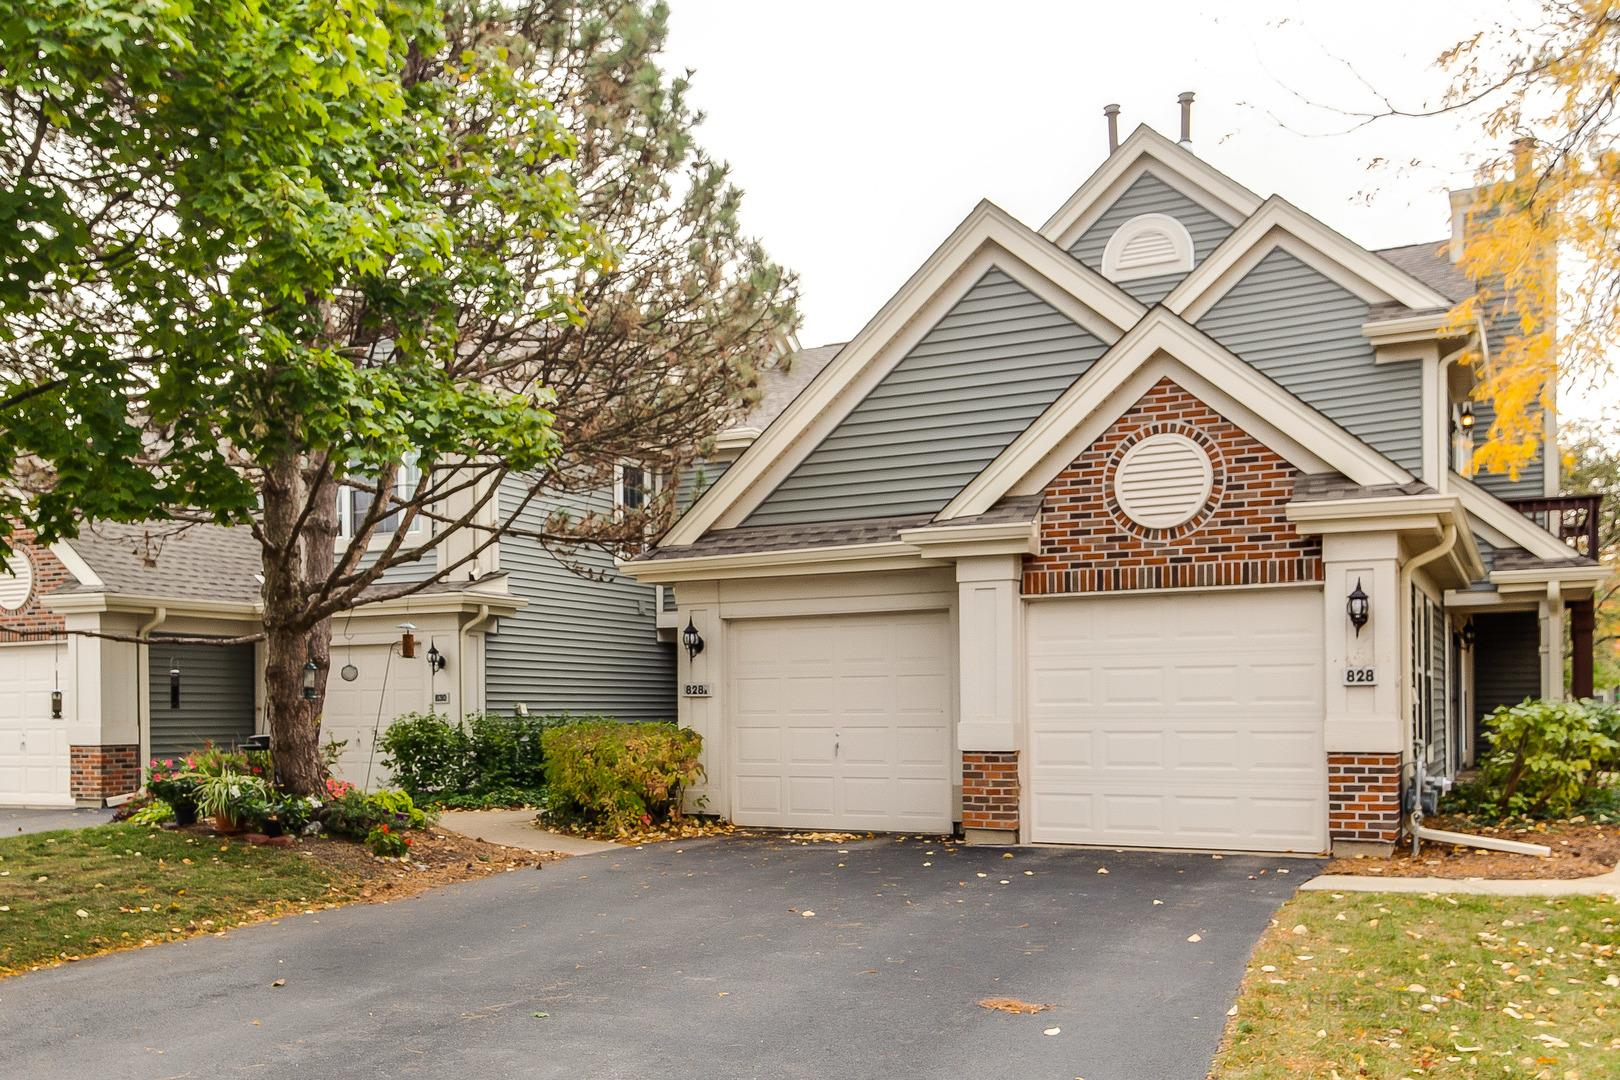 828 Spring Creek Court #A, Elk Grove Village, IL 60007 - #: 10932718